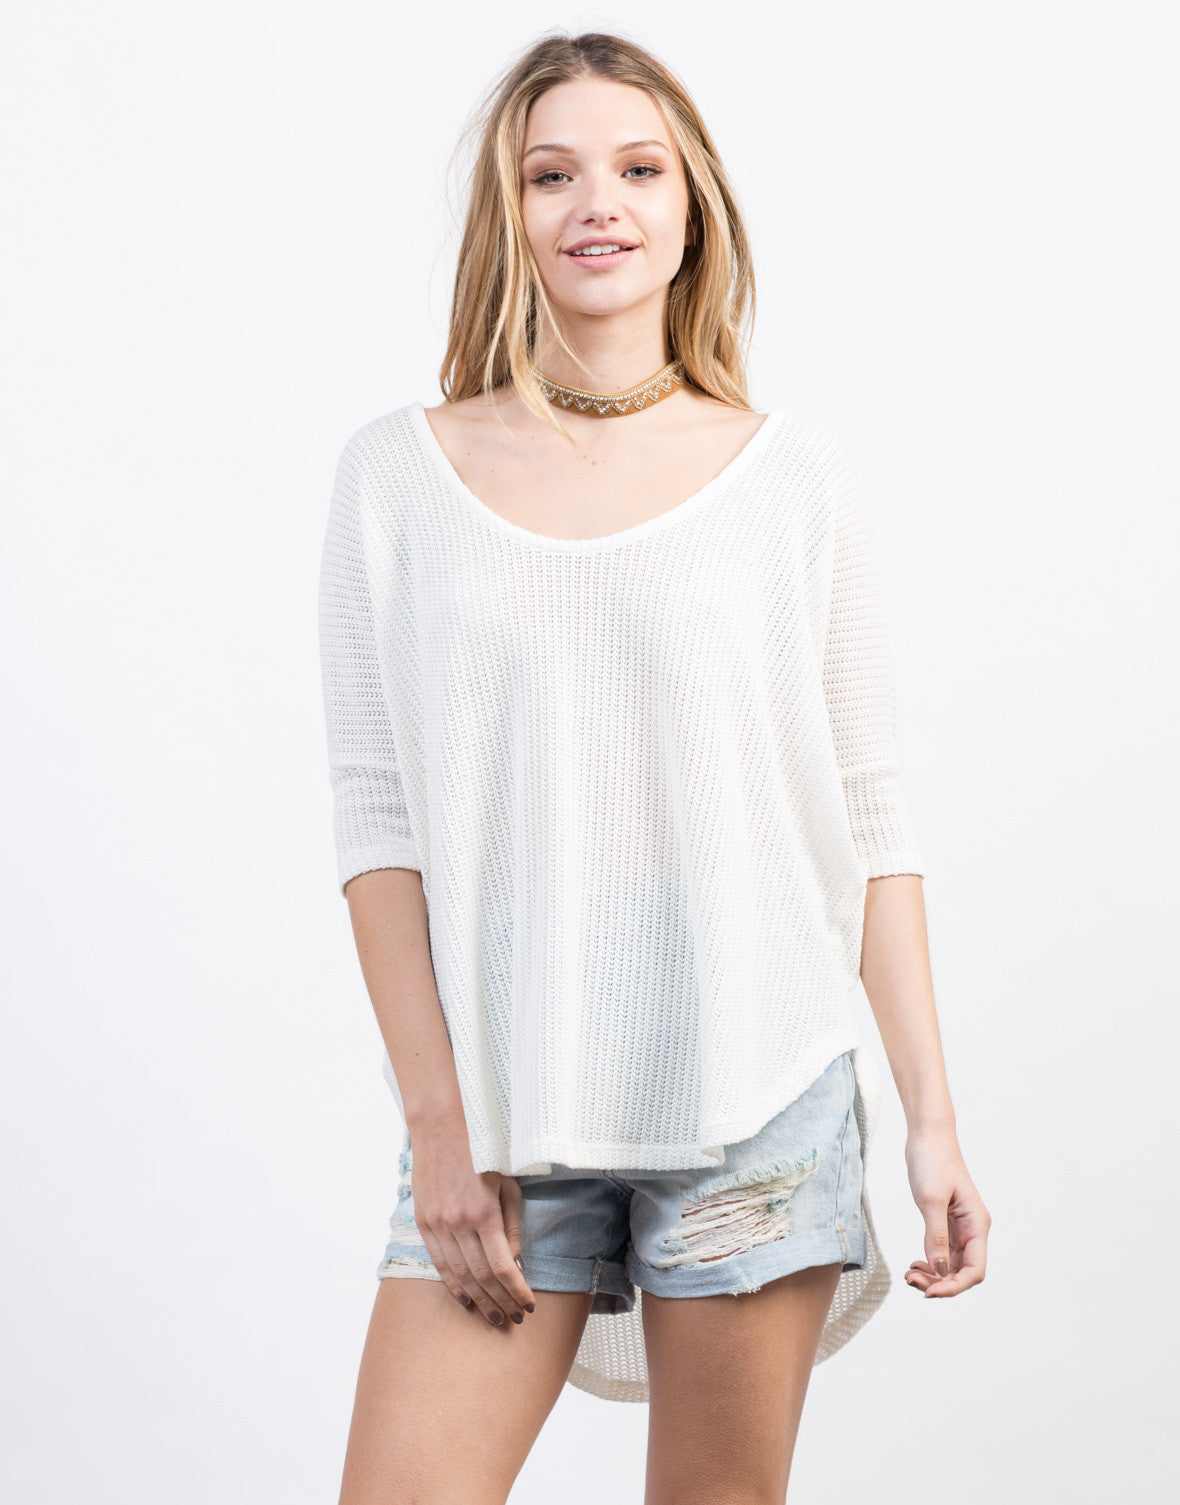 Front View of Netted Dolman Sweater Top